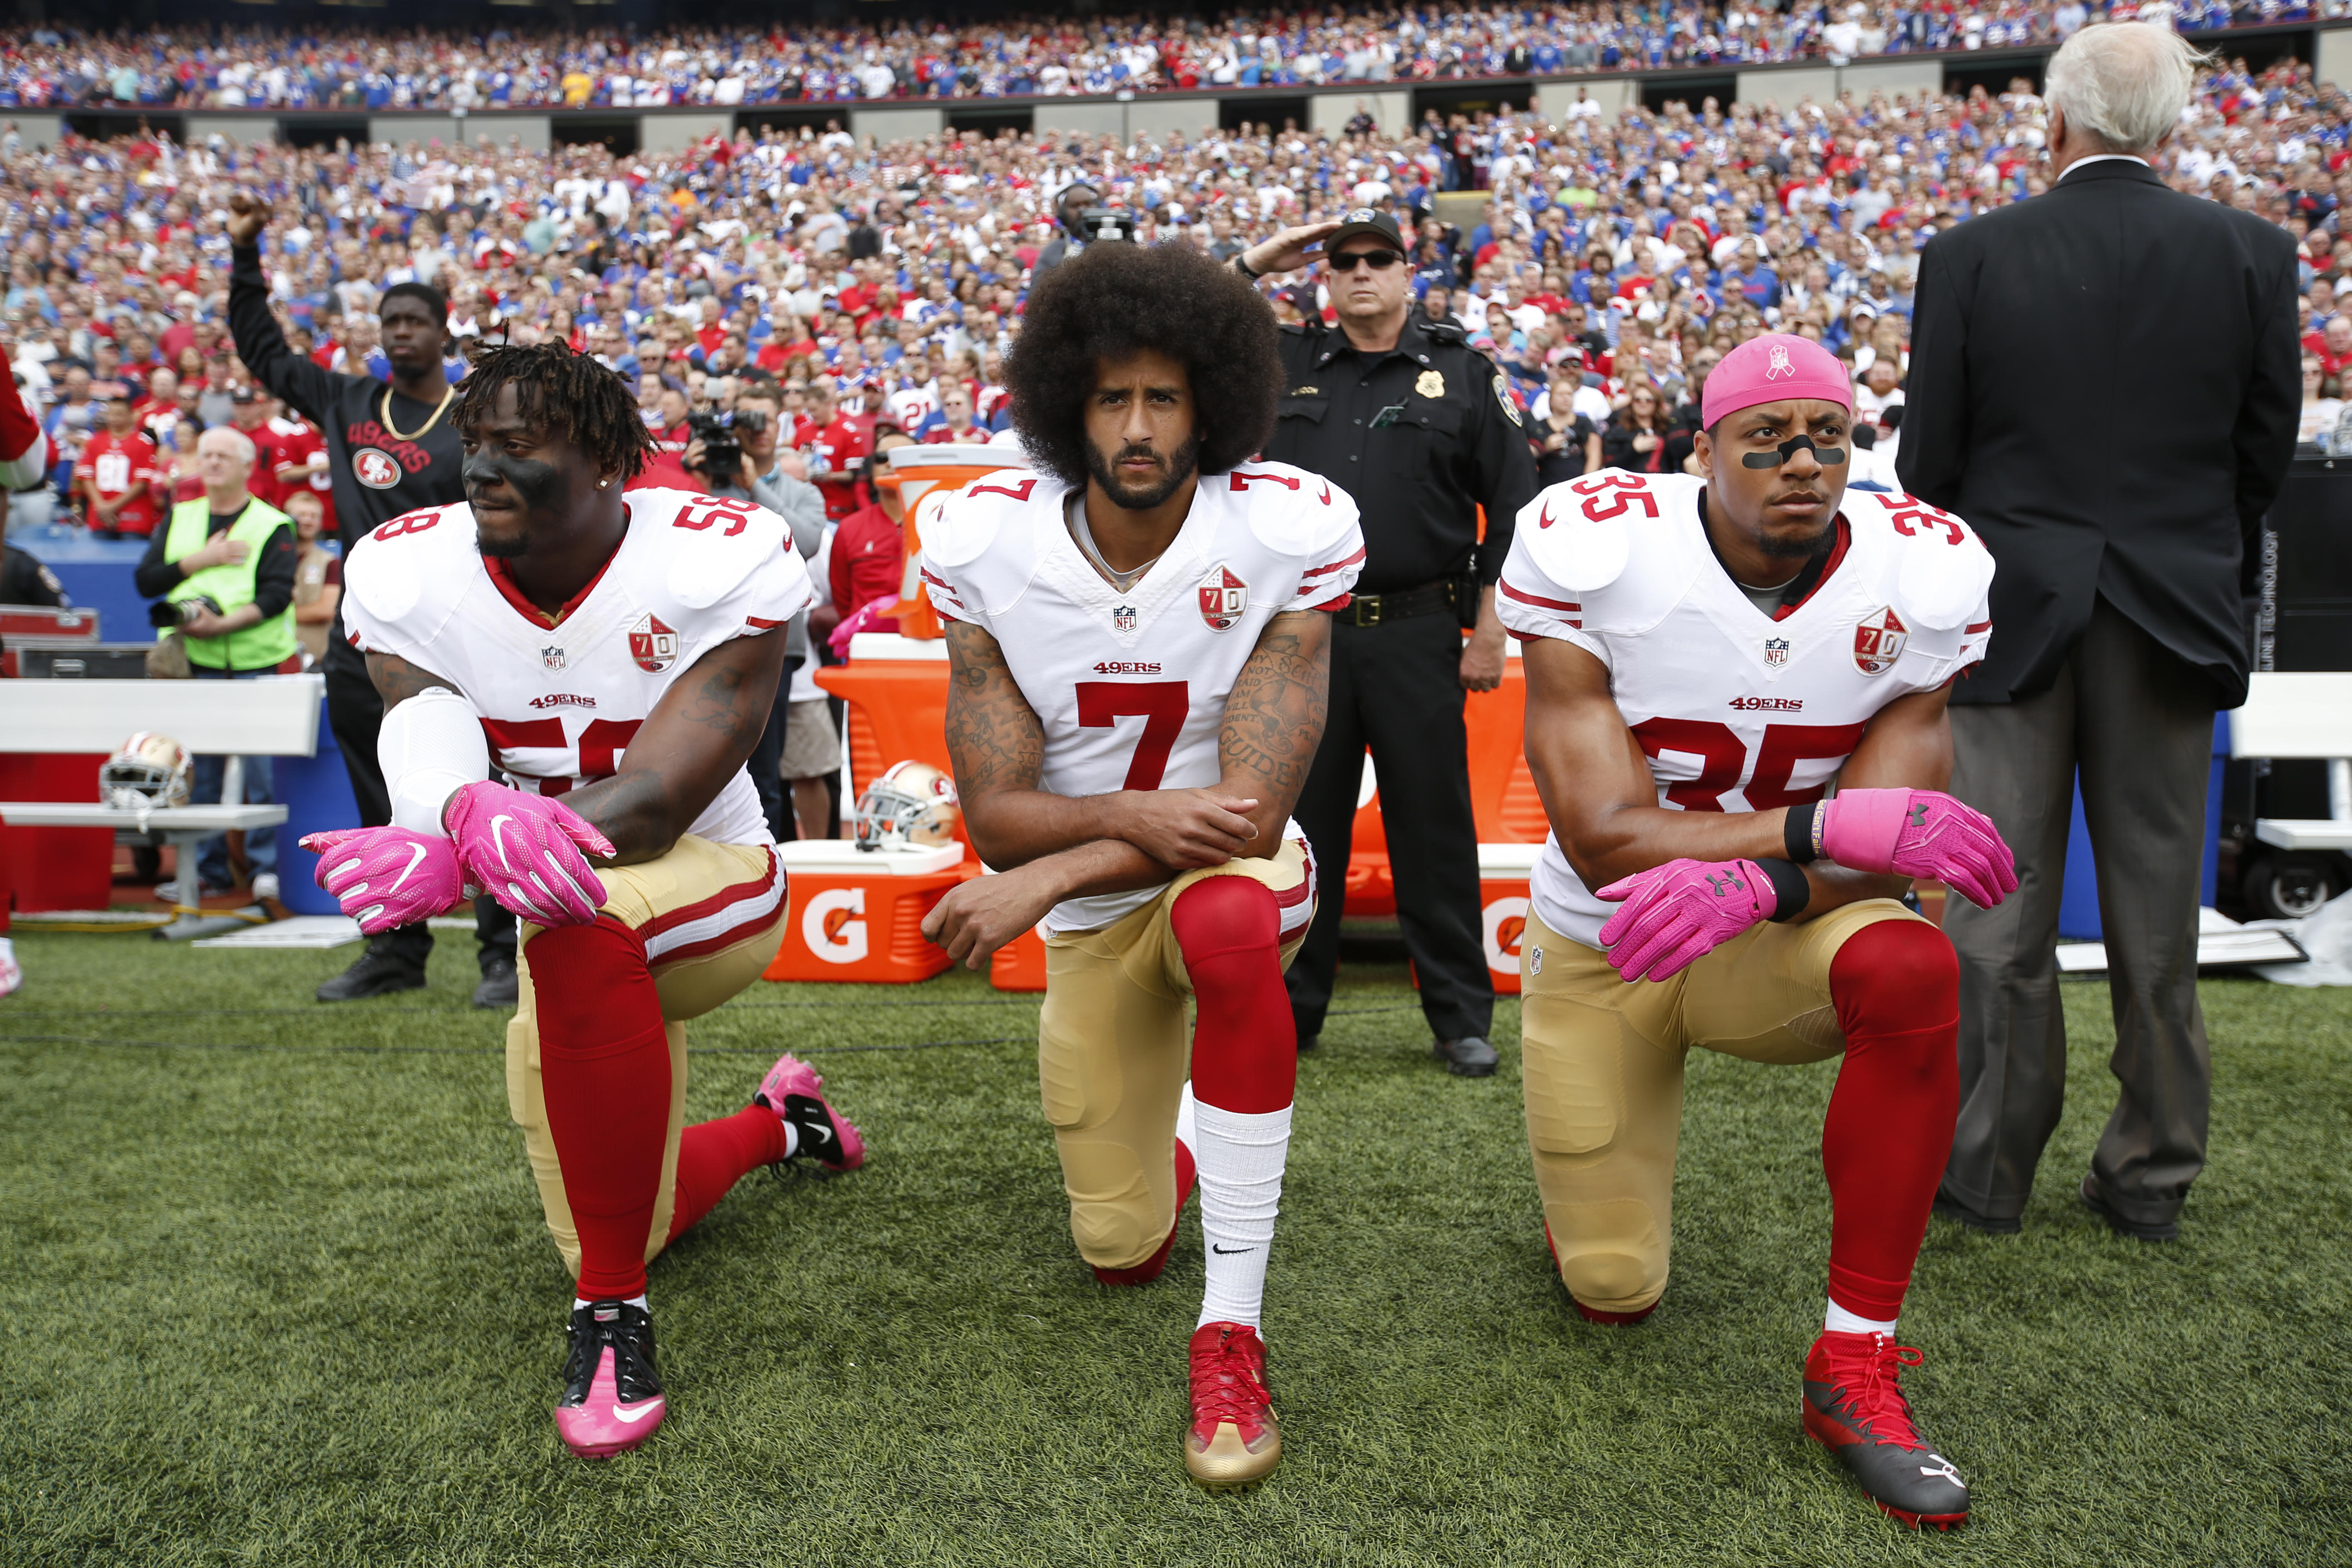 Colin Kaepernick (center) said his original protests during the national anthem, like this one before a game in October 2016, were meant to draw attention to police misconduct.